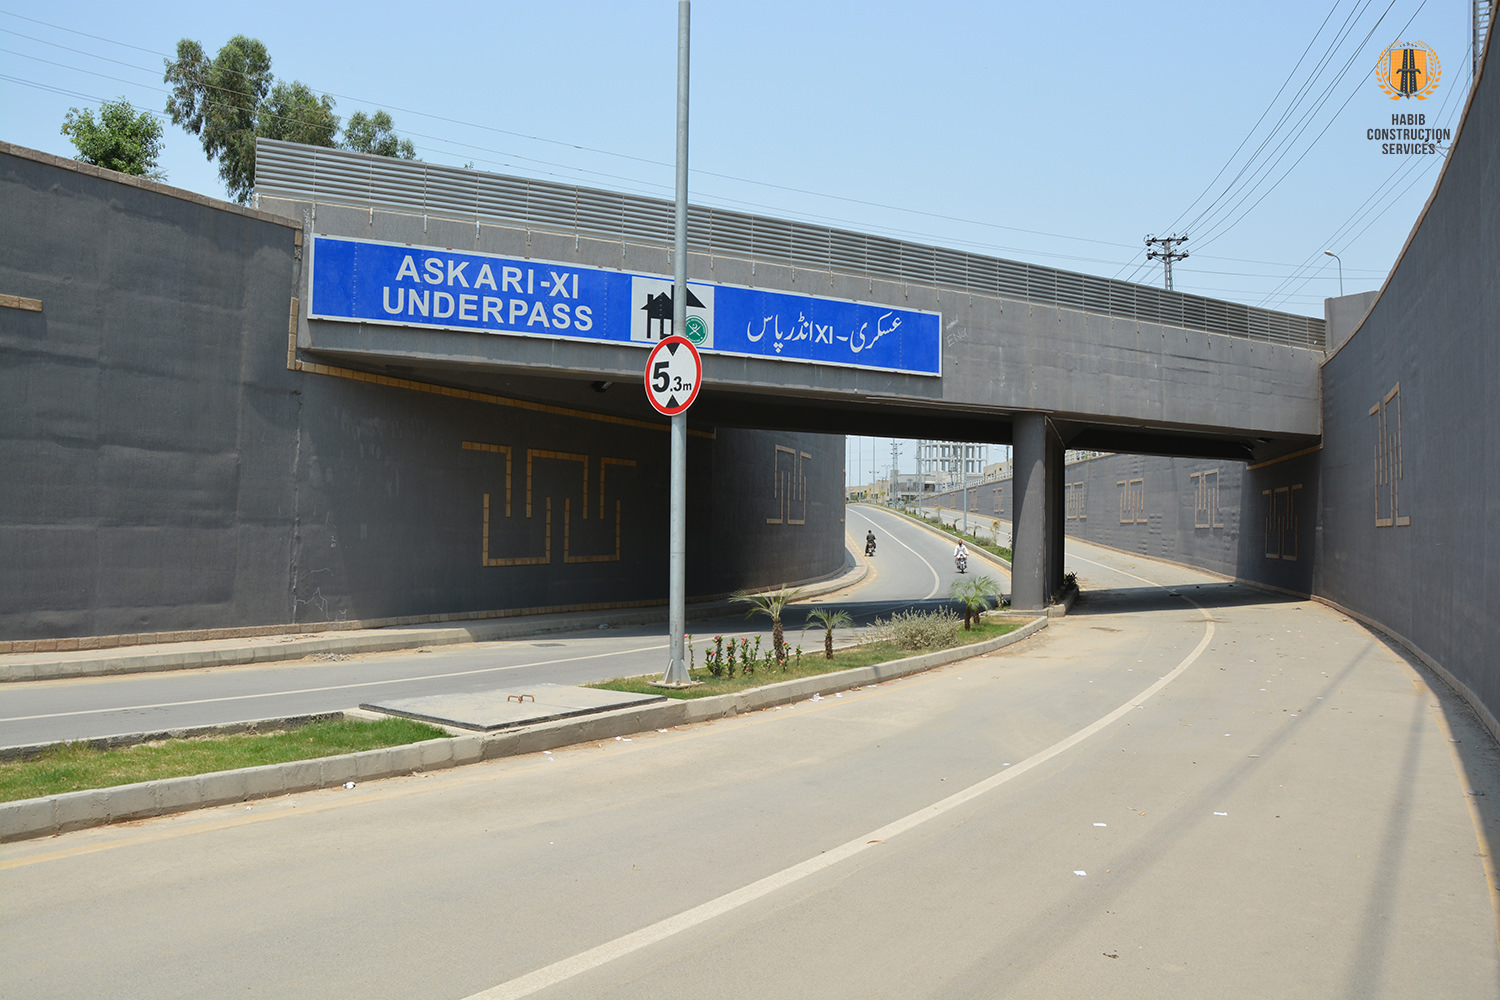 UNDERPASS AT ASKARI-11 LAHORE - Habib Construction Services